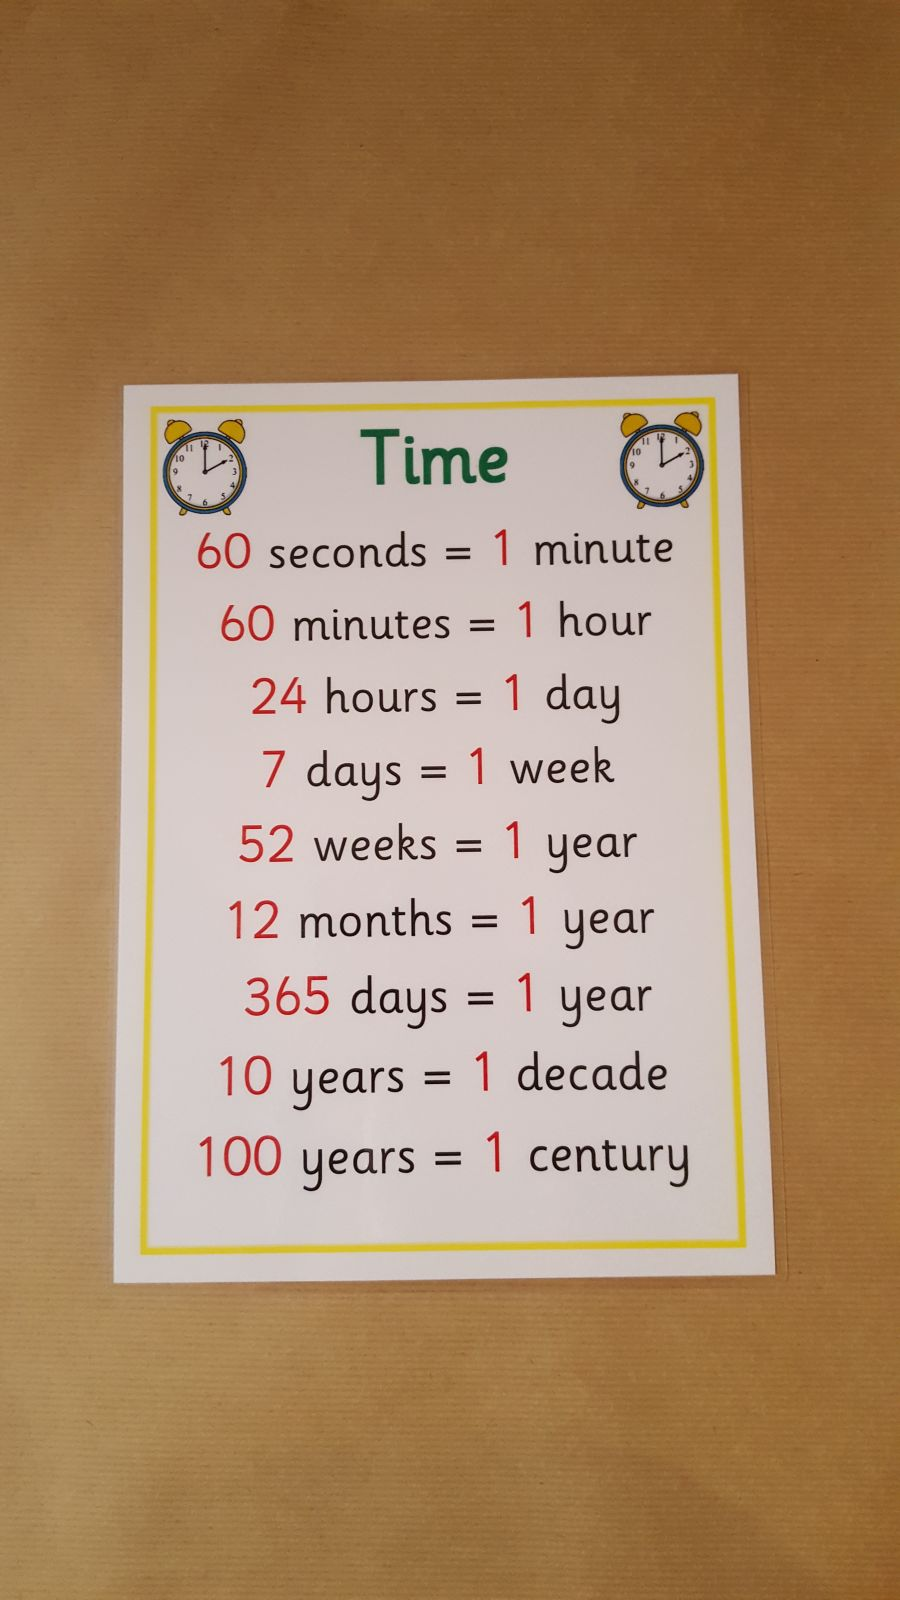 Time Facts Poster